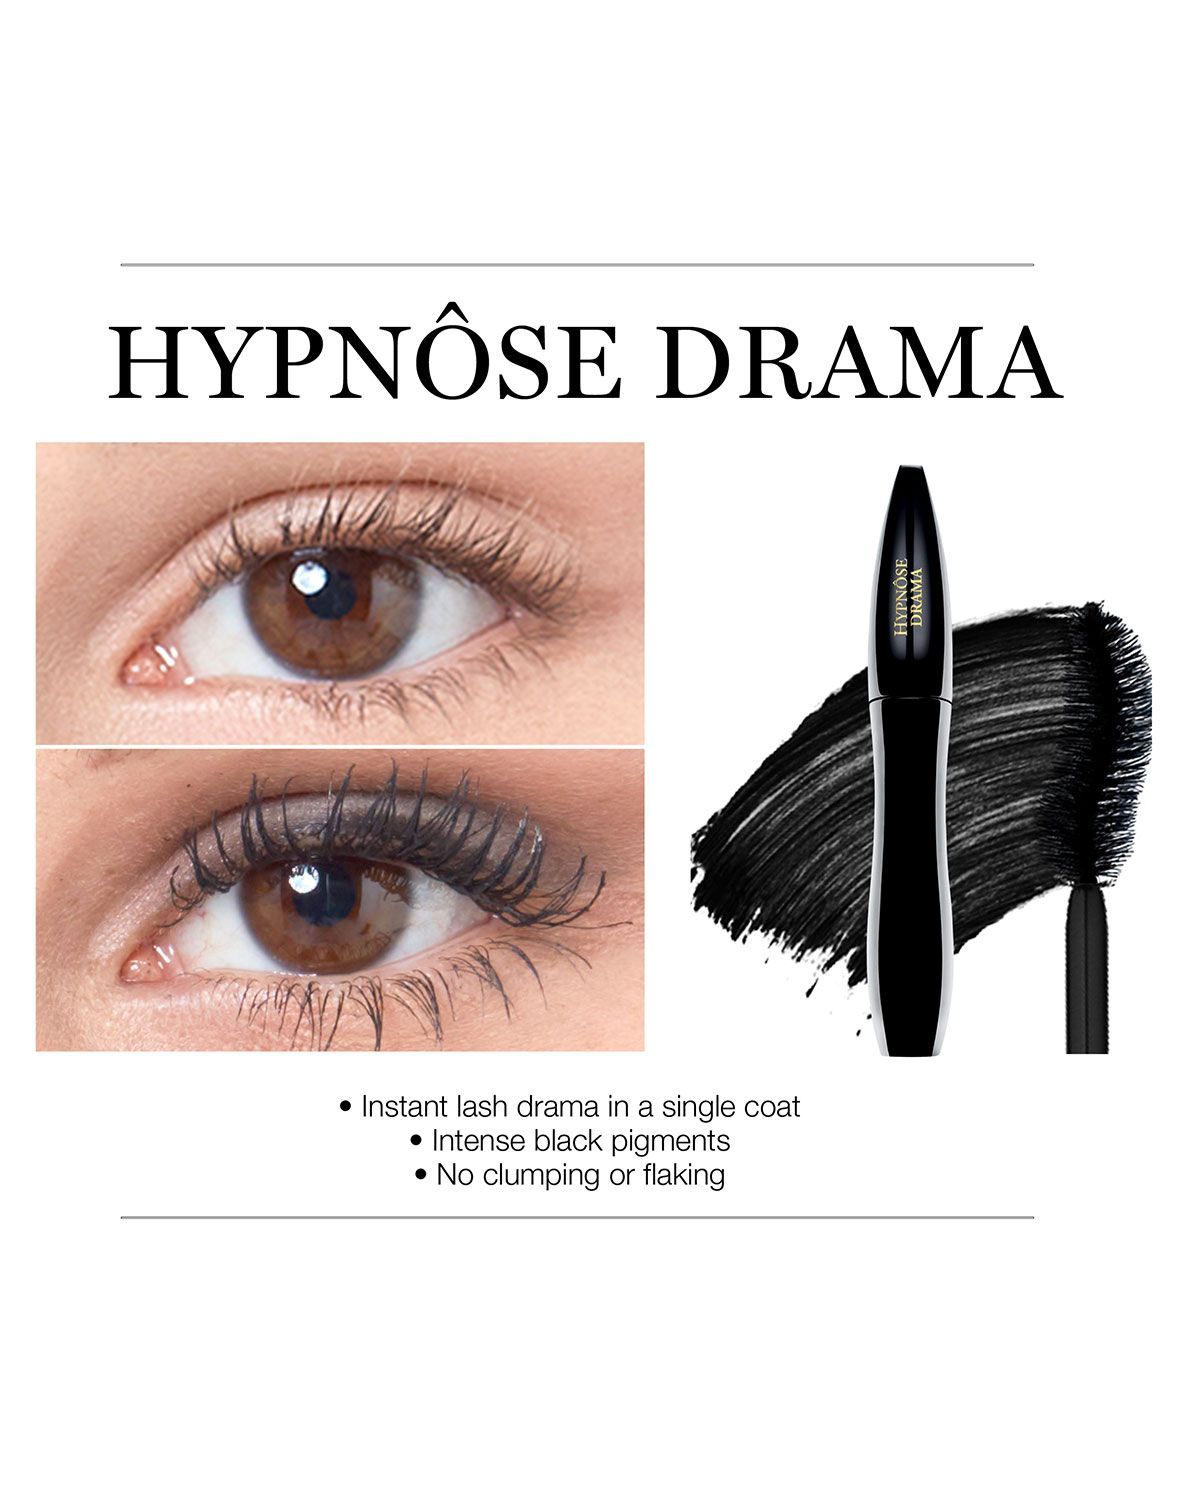 c65d42f1d30 Lancome Hypn&se Drama Instant Full-Volume Mascara | Products ...